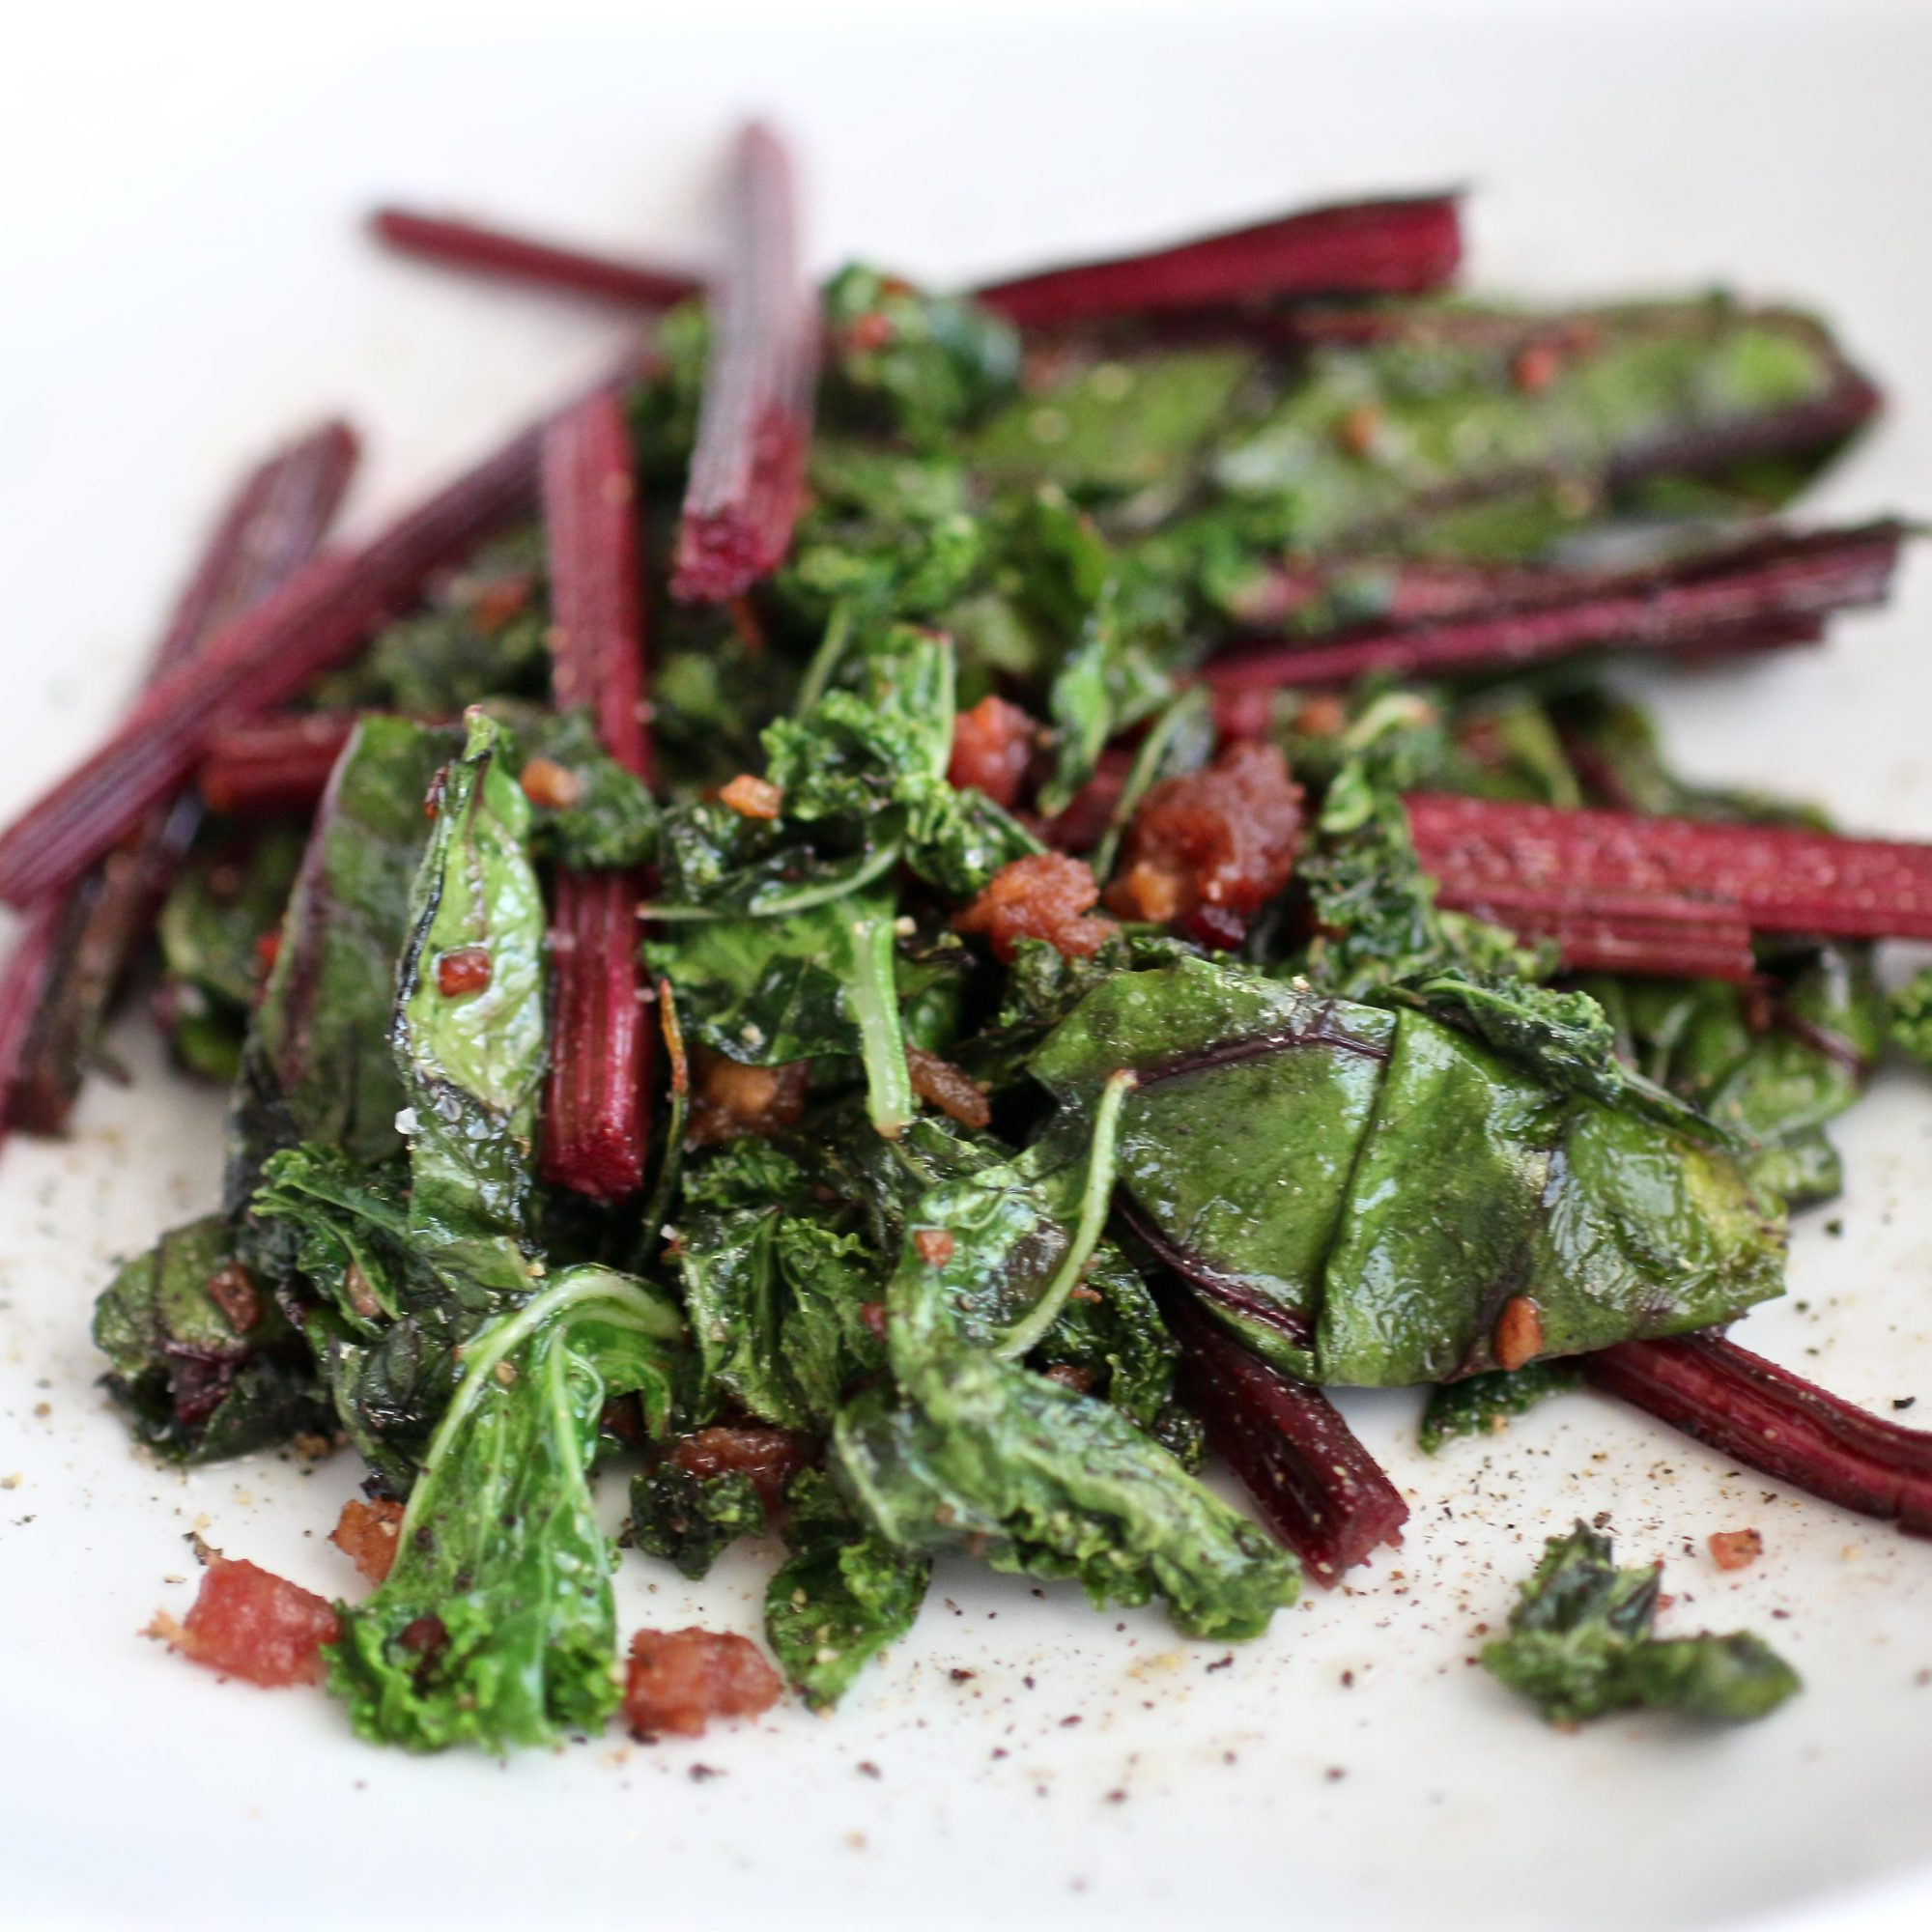 Beet Greens and Kale Sauteed with Bacon and Garlic on a white plate